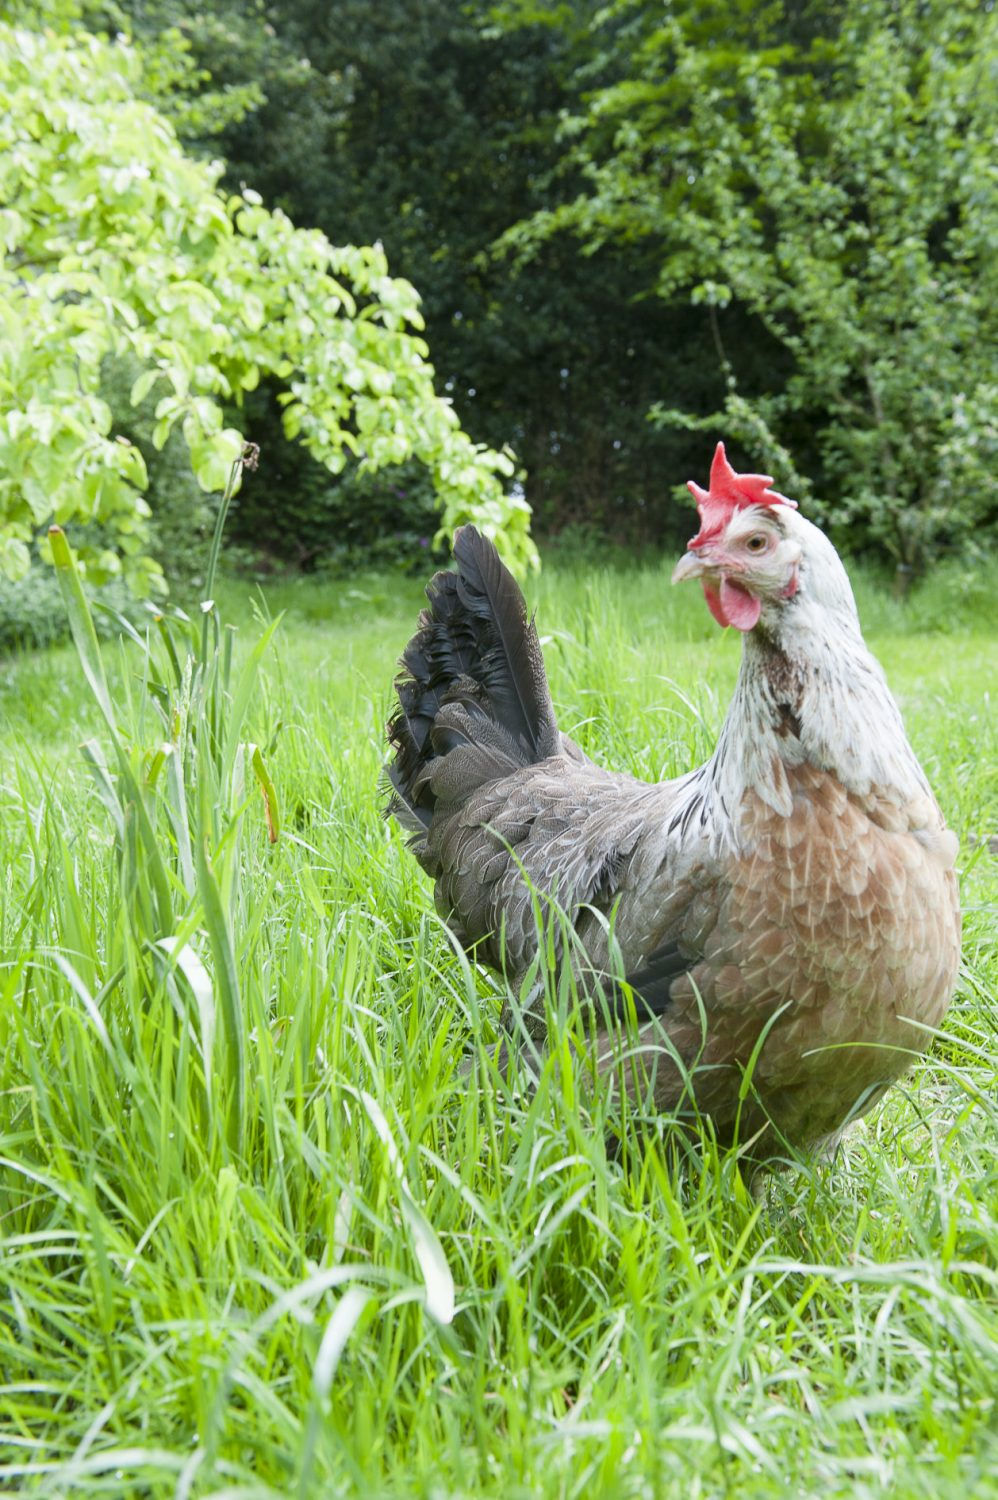 We're led back up through the garden into the orchard where her comely purebred hens – Buff Laced Wyandotte, Speckled Sussex and Silver-grey Dorking – amble contentedly around